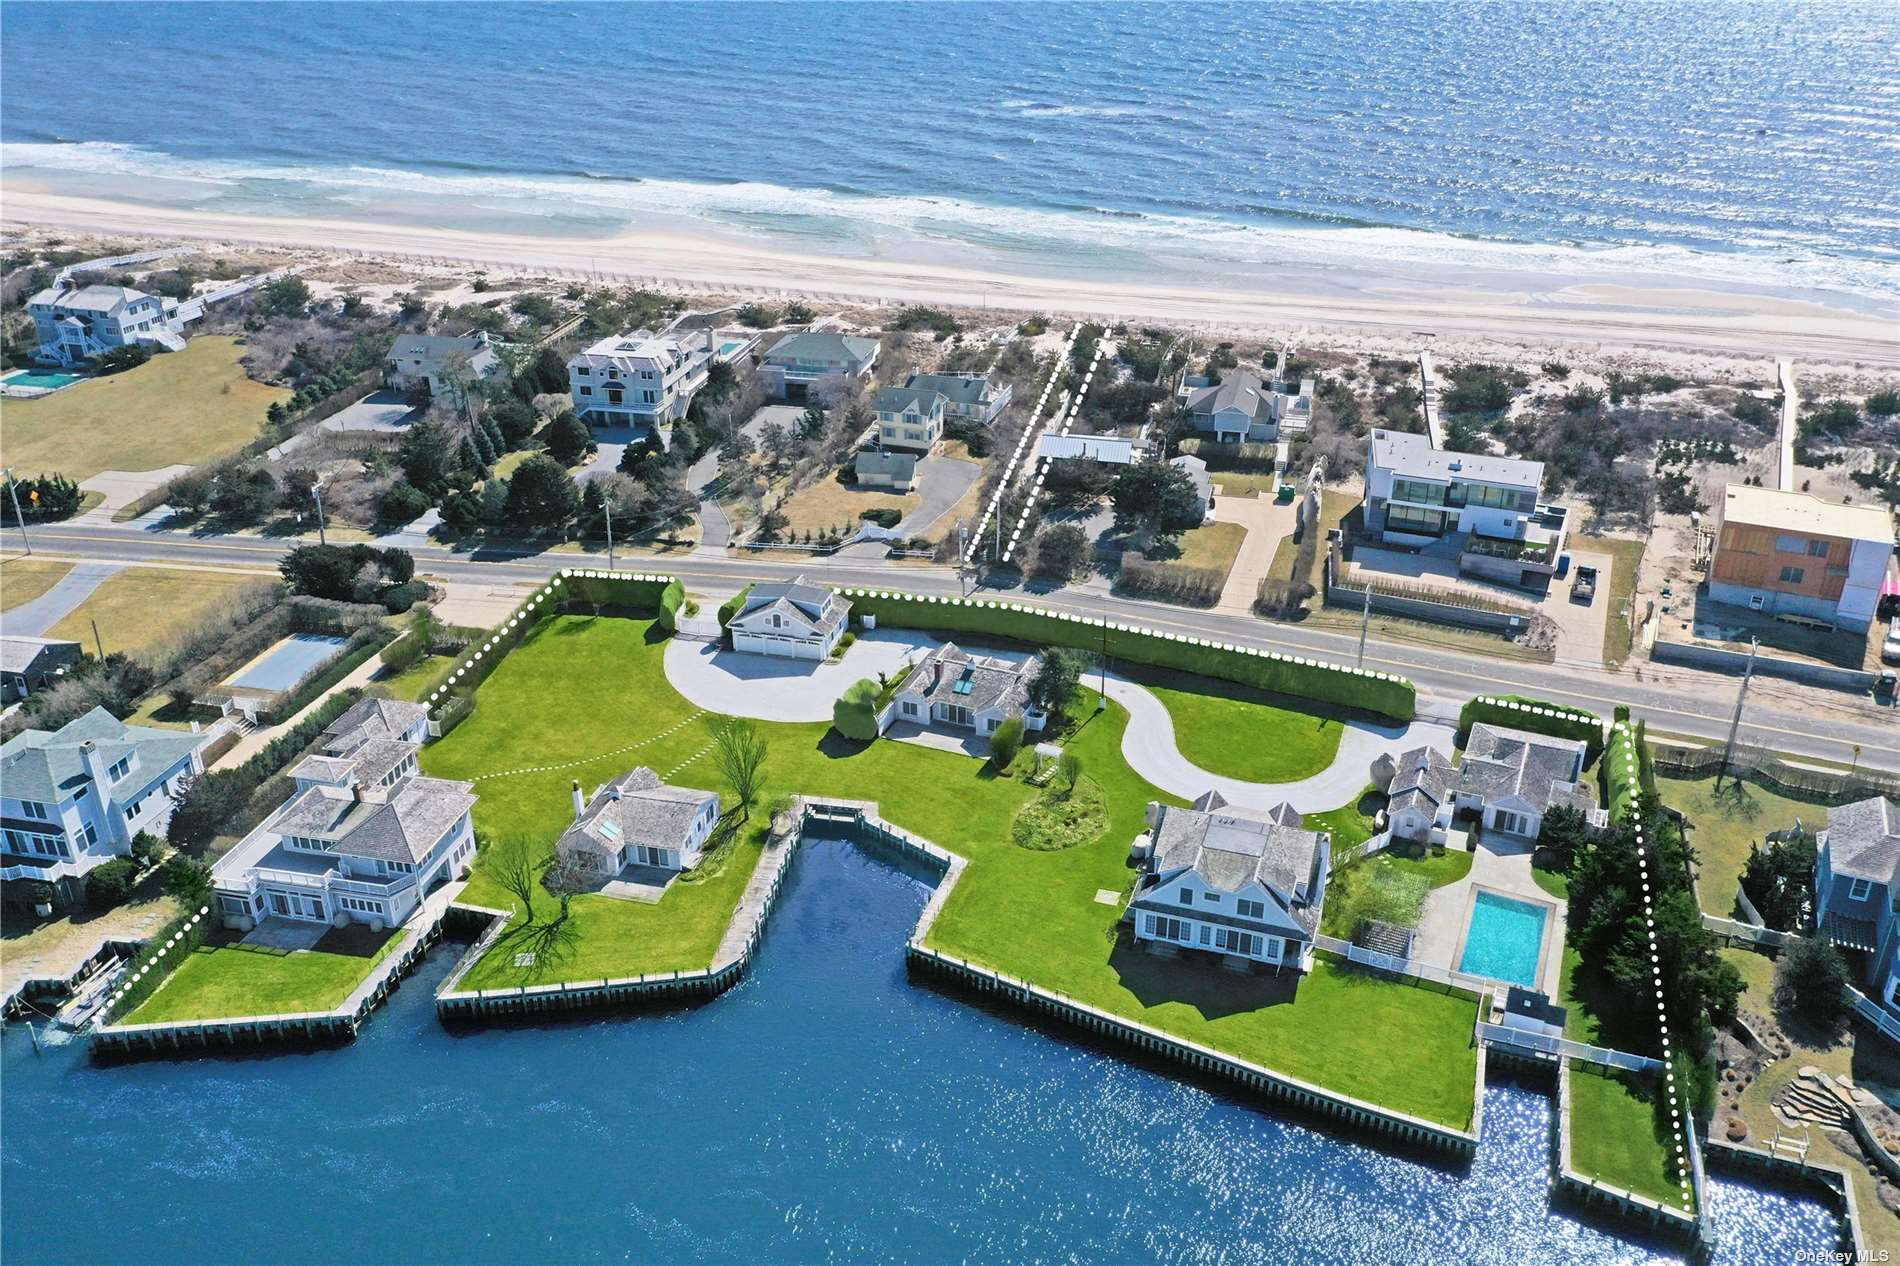 A spectacular Bayfront opportunity now exists in Quogue. This one of a kind property consists of 2 Main residences and 3 beach cottages with a total of 17 bedrooms and 11.5 baths. There is a 3 car detached garage with a gym above it. The property features a generator, sprinklers, heated saltwater pool, 500' bulkhead, 3 boat slips with water and electricity, and deeded ocean access across the street. Subdivide and build two mansions in their own parcel or enjoy the existing perfect waterfront compound. What more could you want?